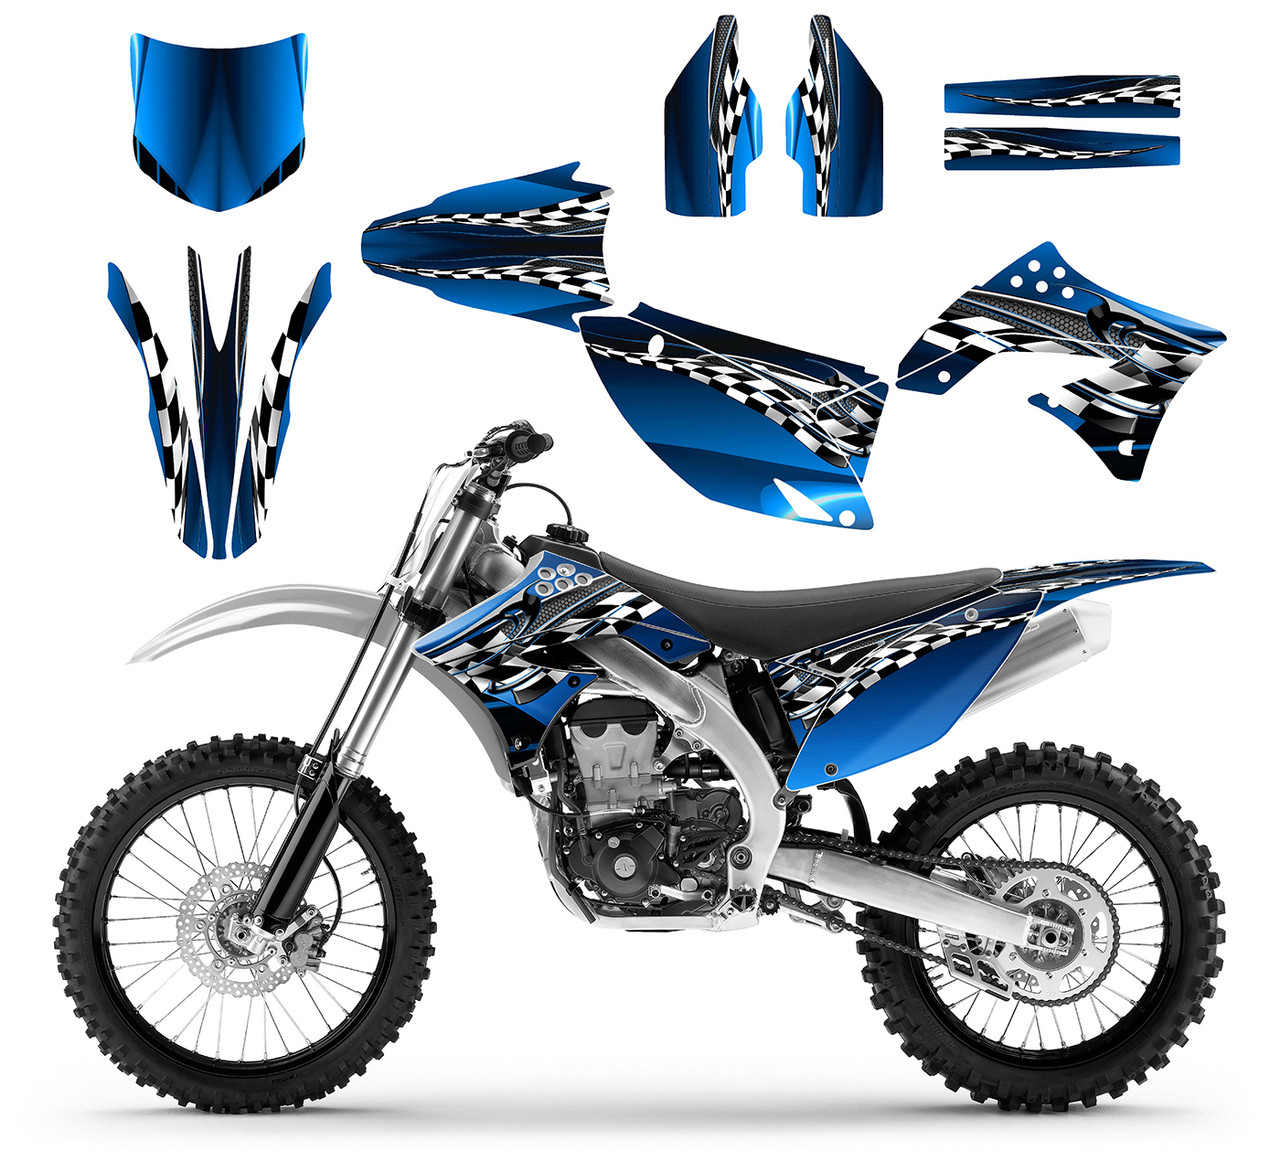 2010 kx 450f graphics kit for kawasaki 4-stroke dirt bike